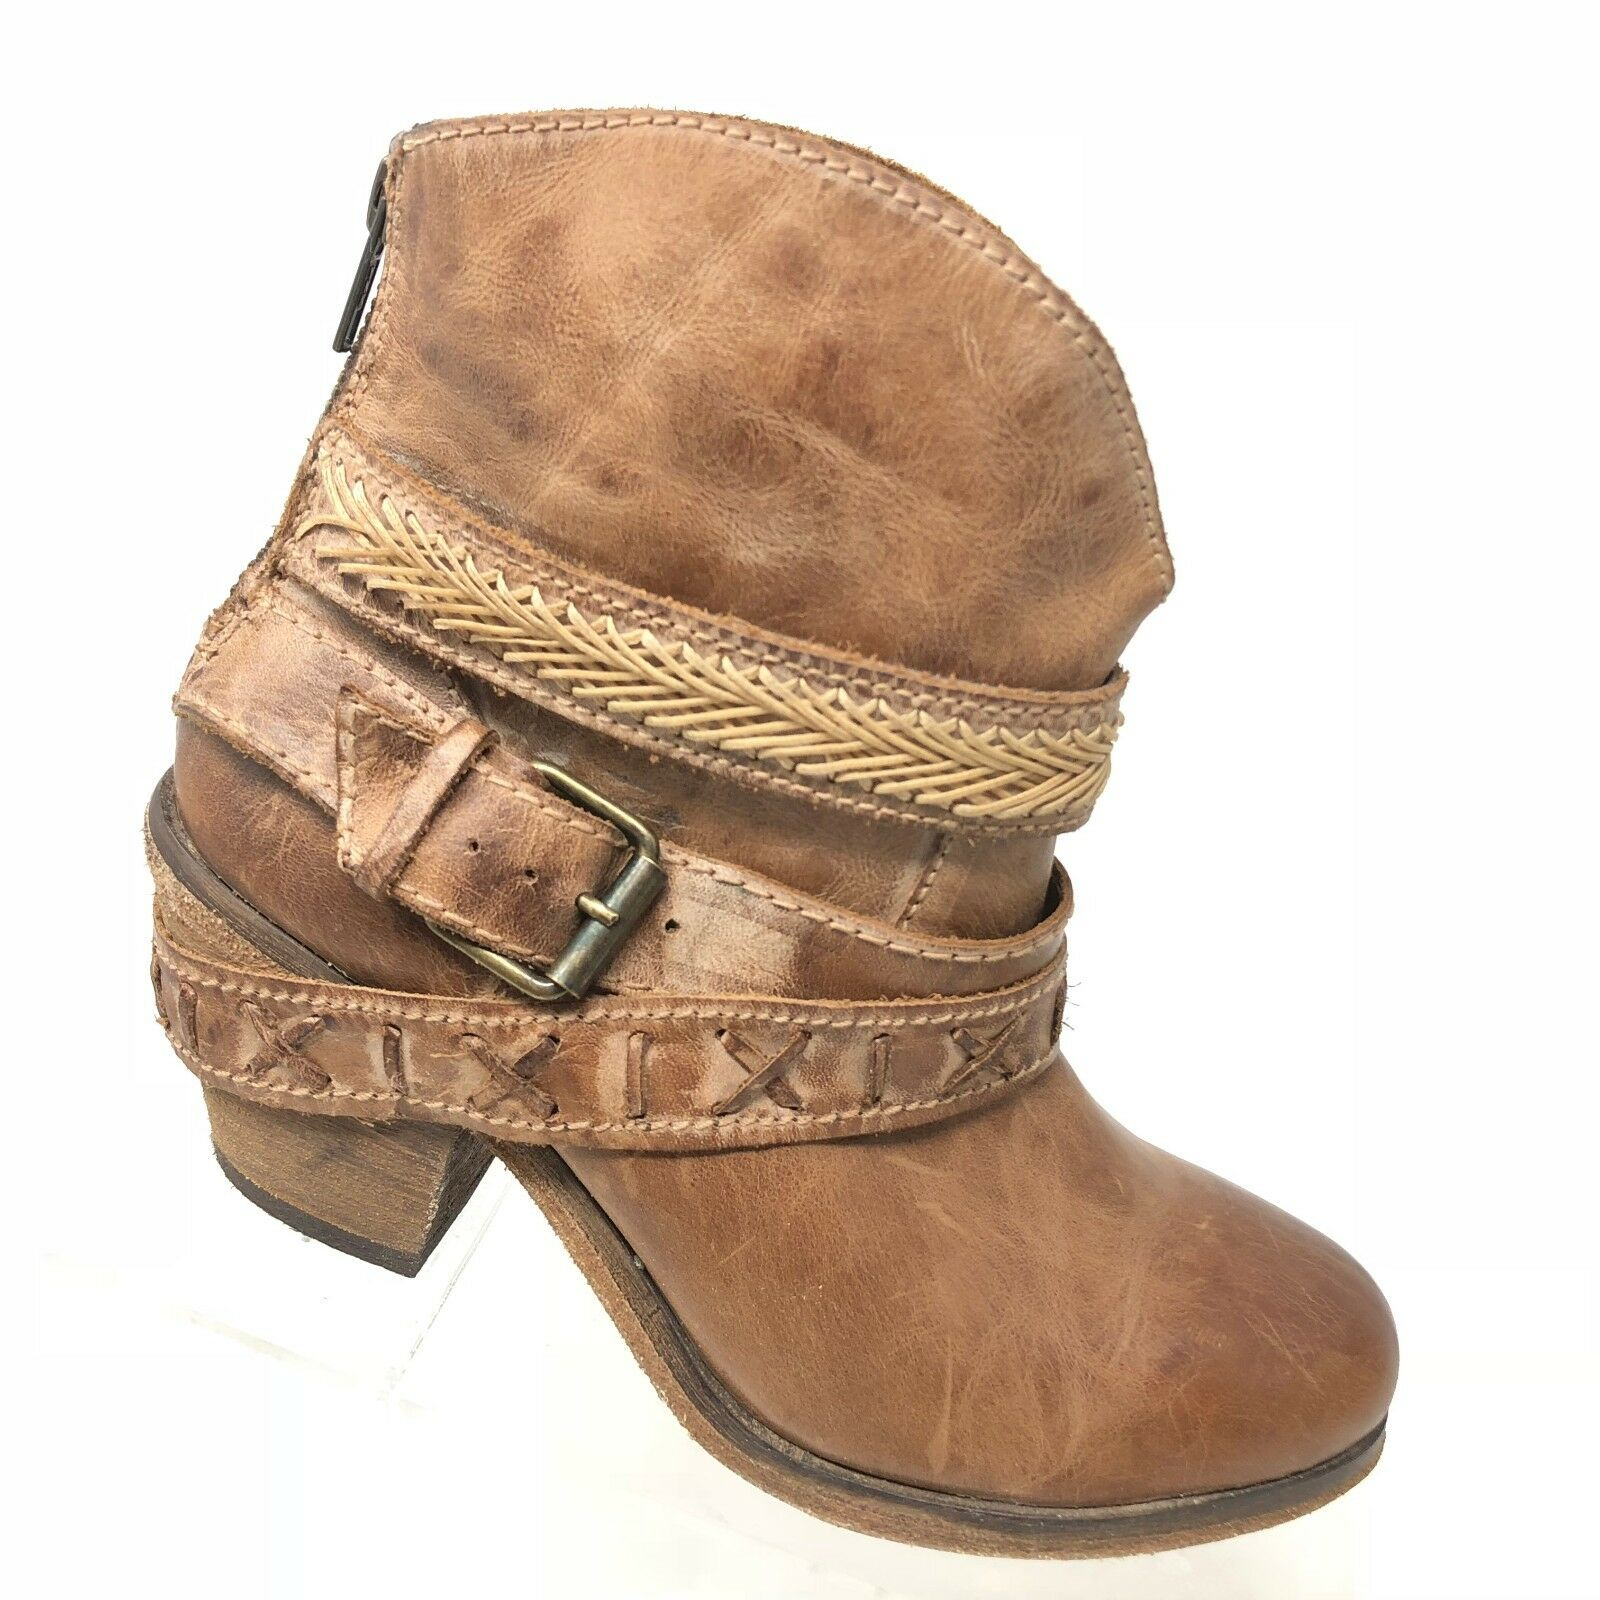 Corral Cognac Leather Mixed Strap Ankle avvio Distressed Western donna Dimensione 7.5M